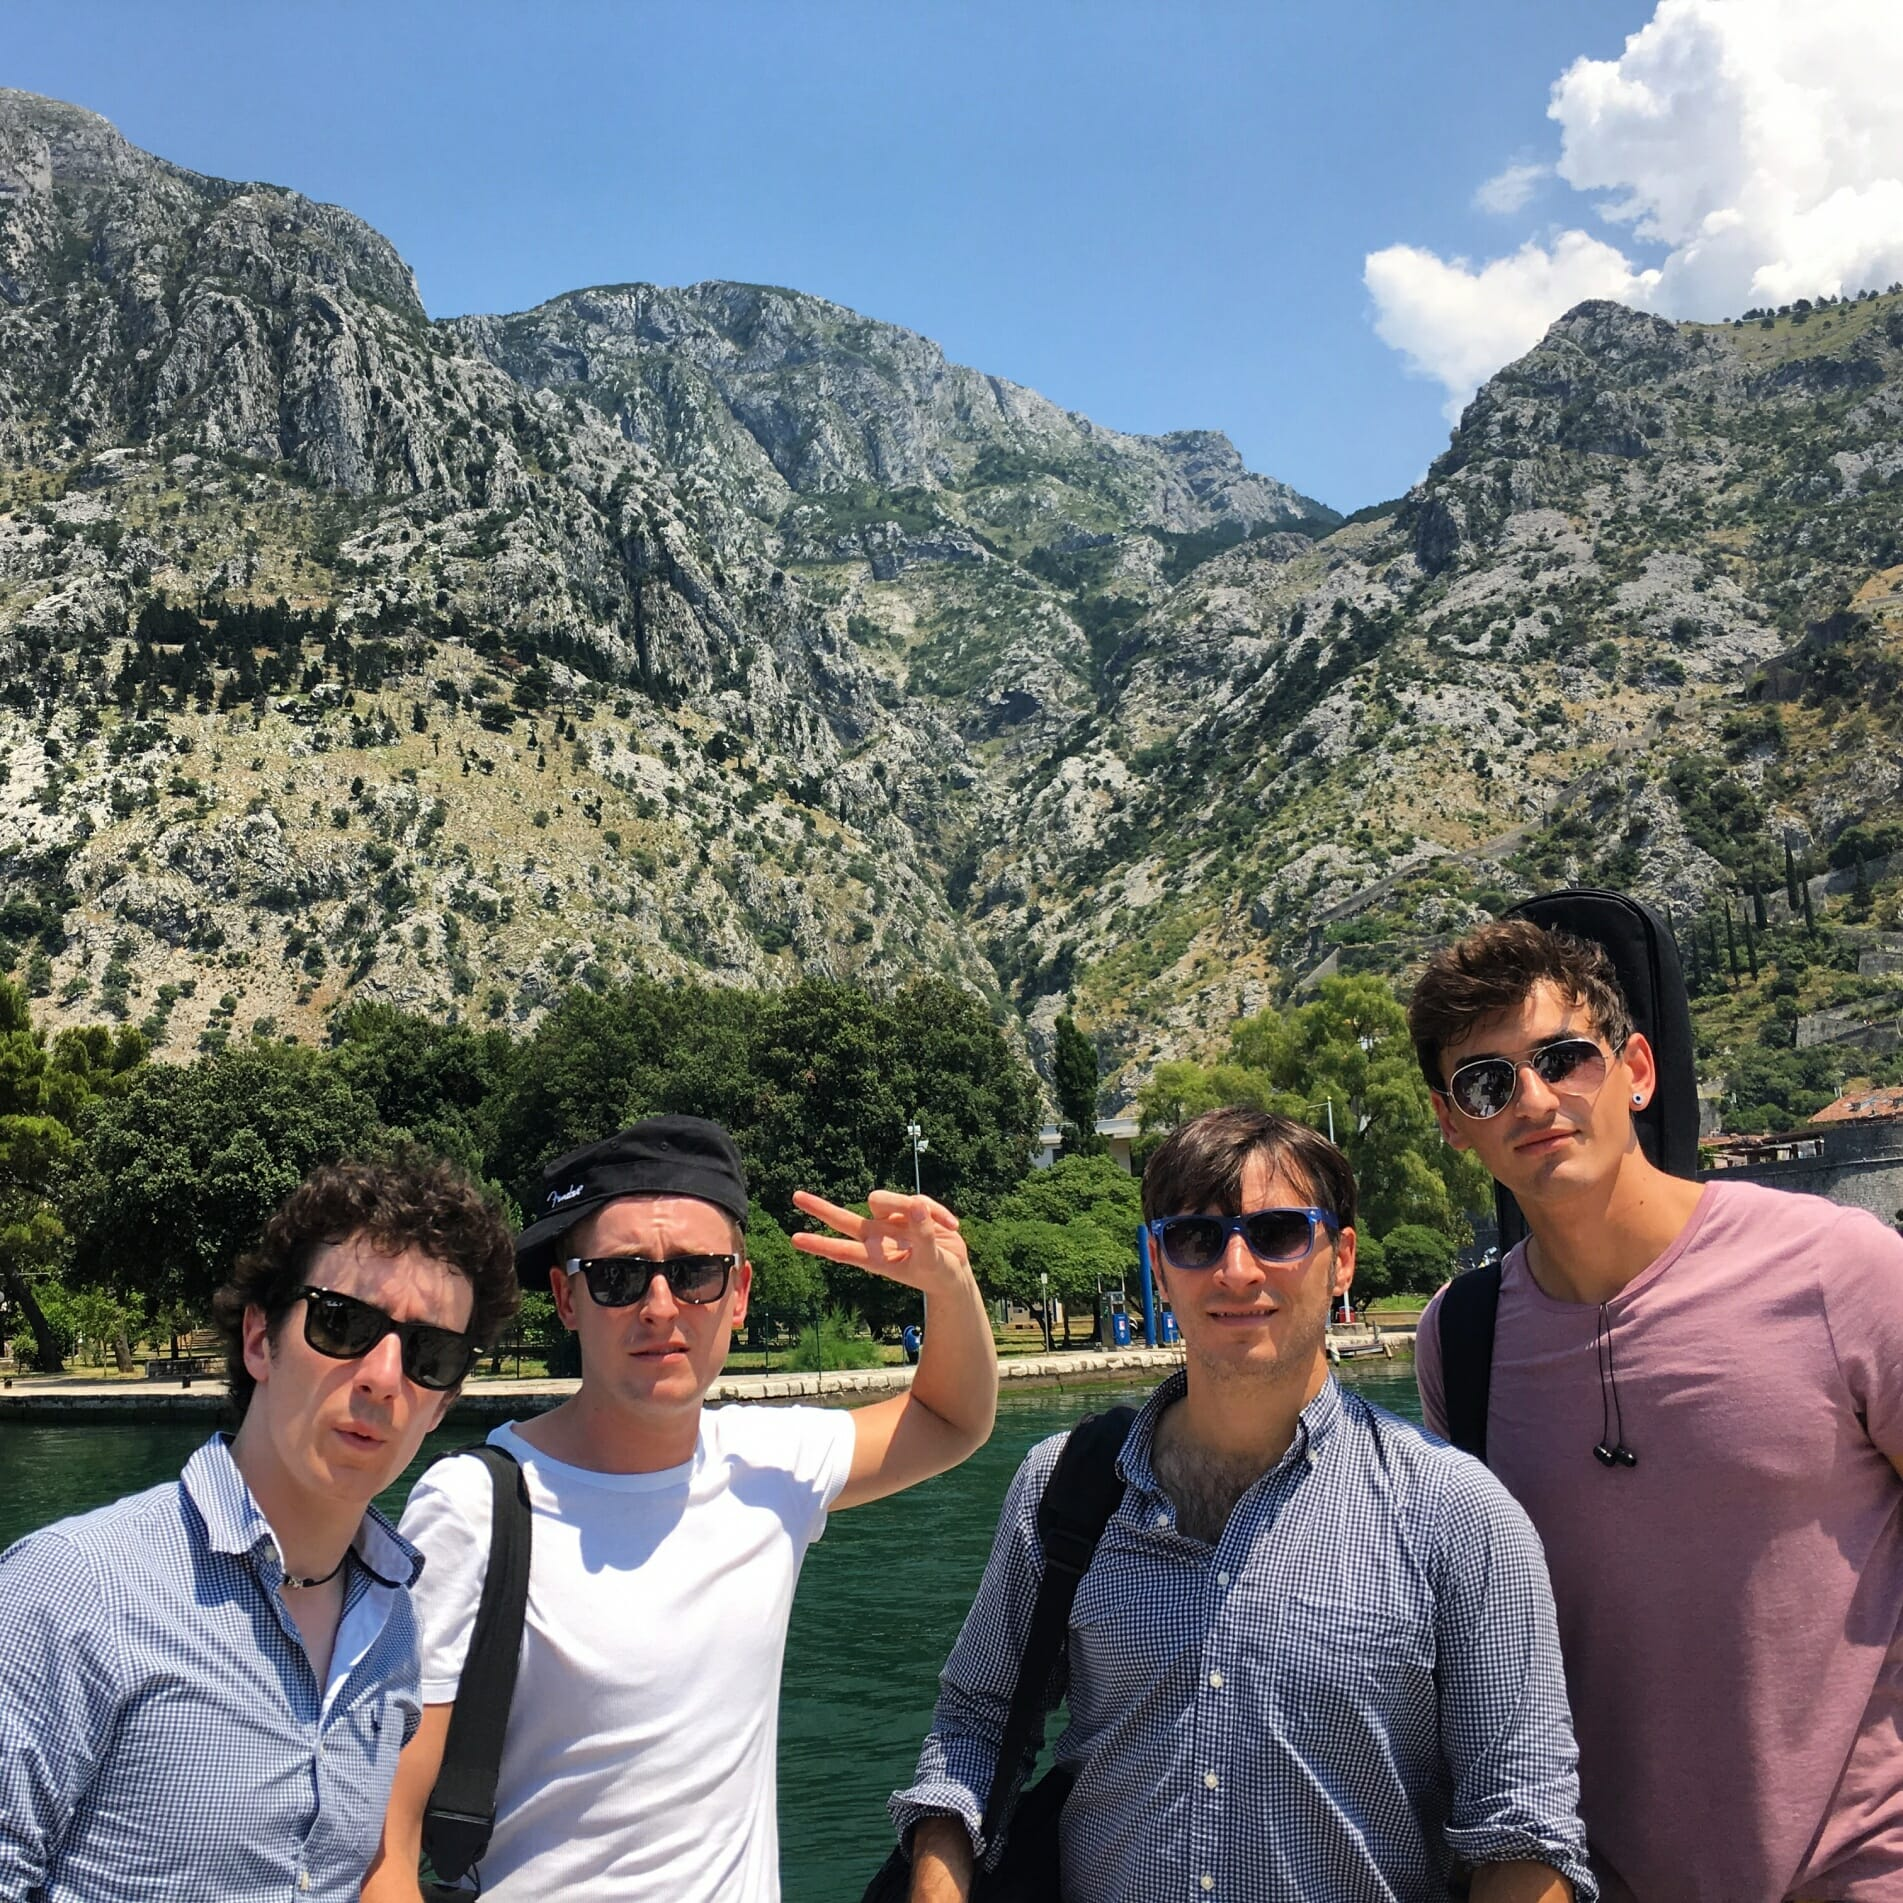 The Zoots, Montenegro, Band on tour, travelling band, Sixites band, Royal Carribbean Band, Zoots, Band in Wiltshire,